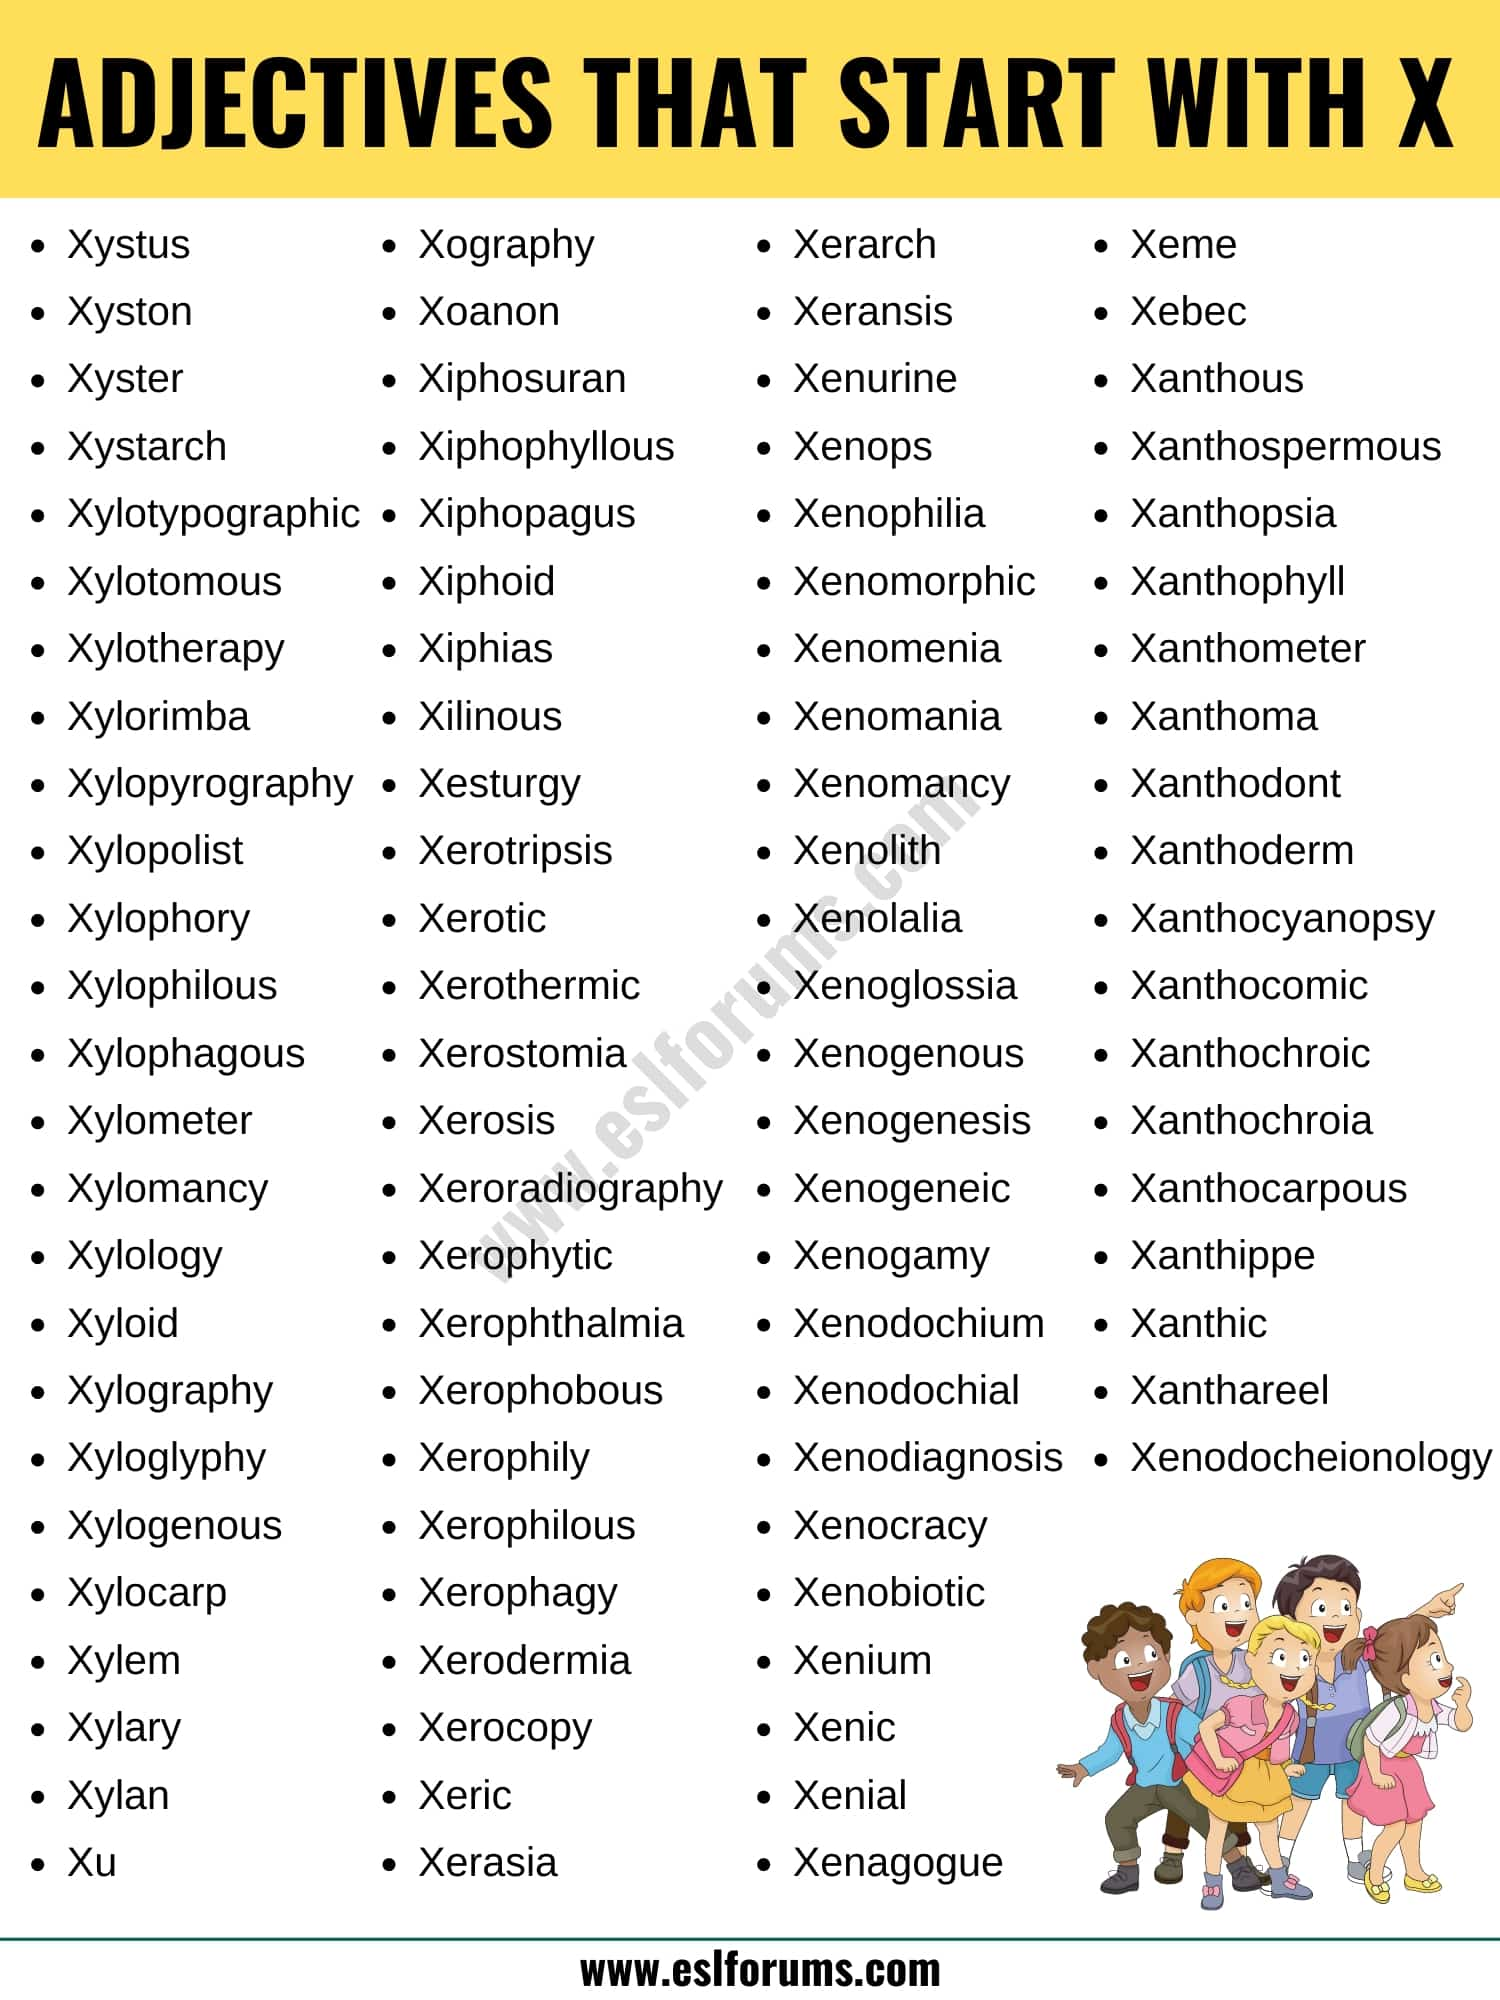 Adjectives that Start with X: List of 90+ Adjectives Starting with X in English